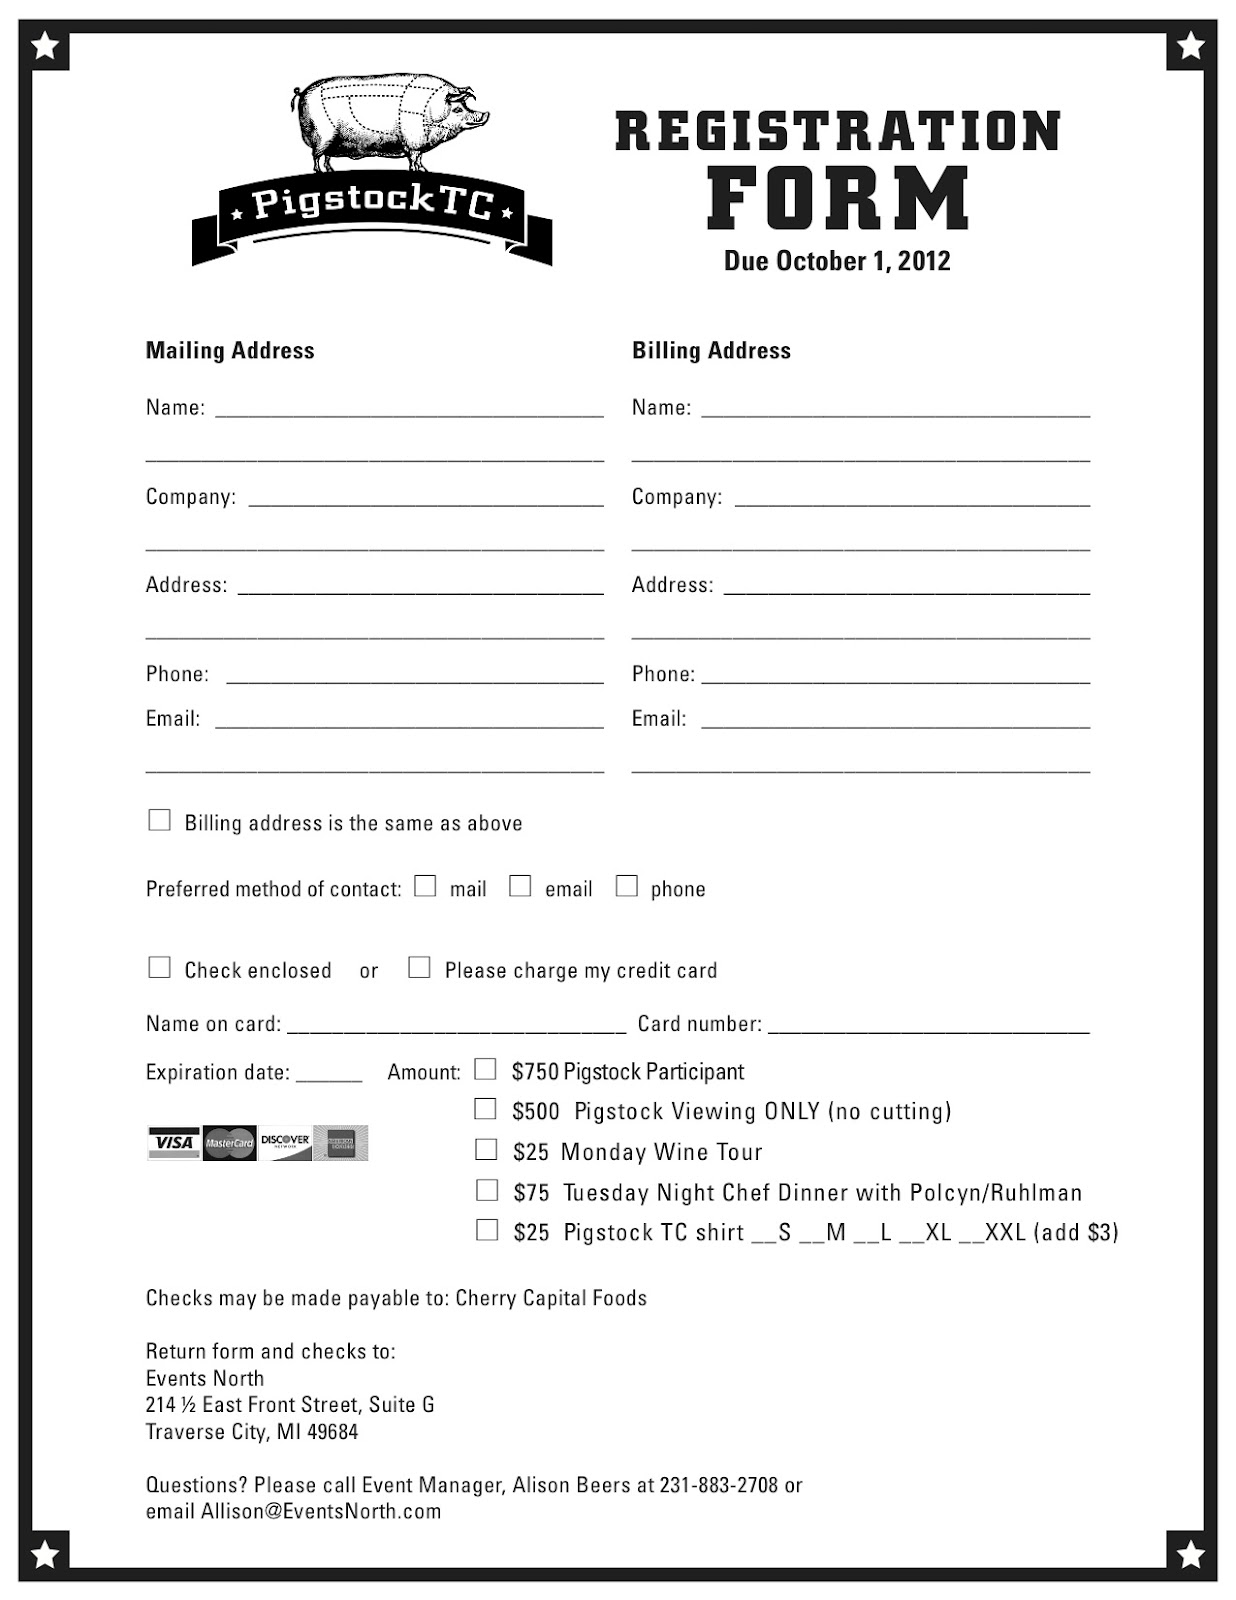 Registration Form Template   9+ Free PDF, Word Documents Download